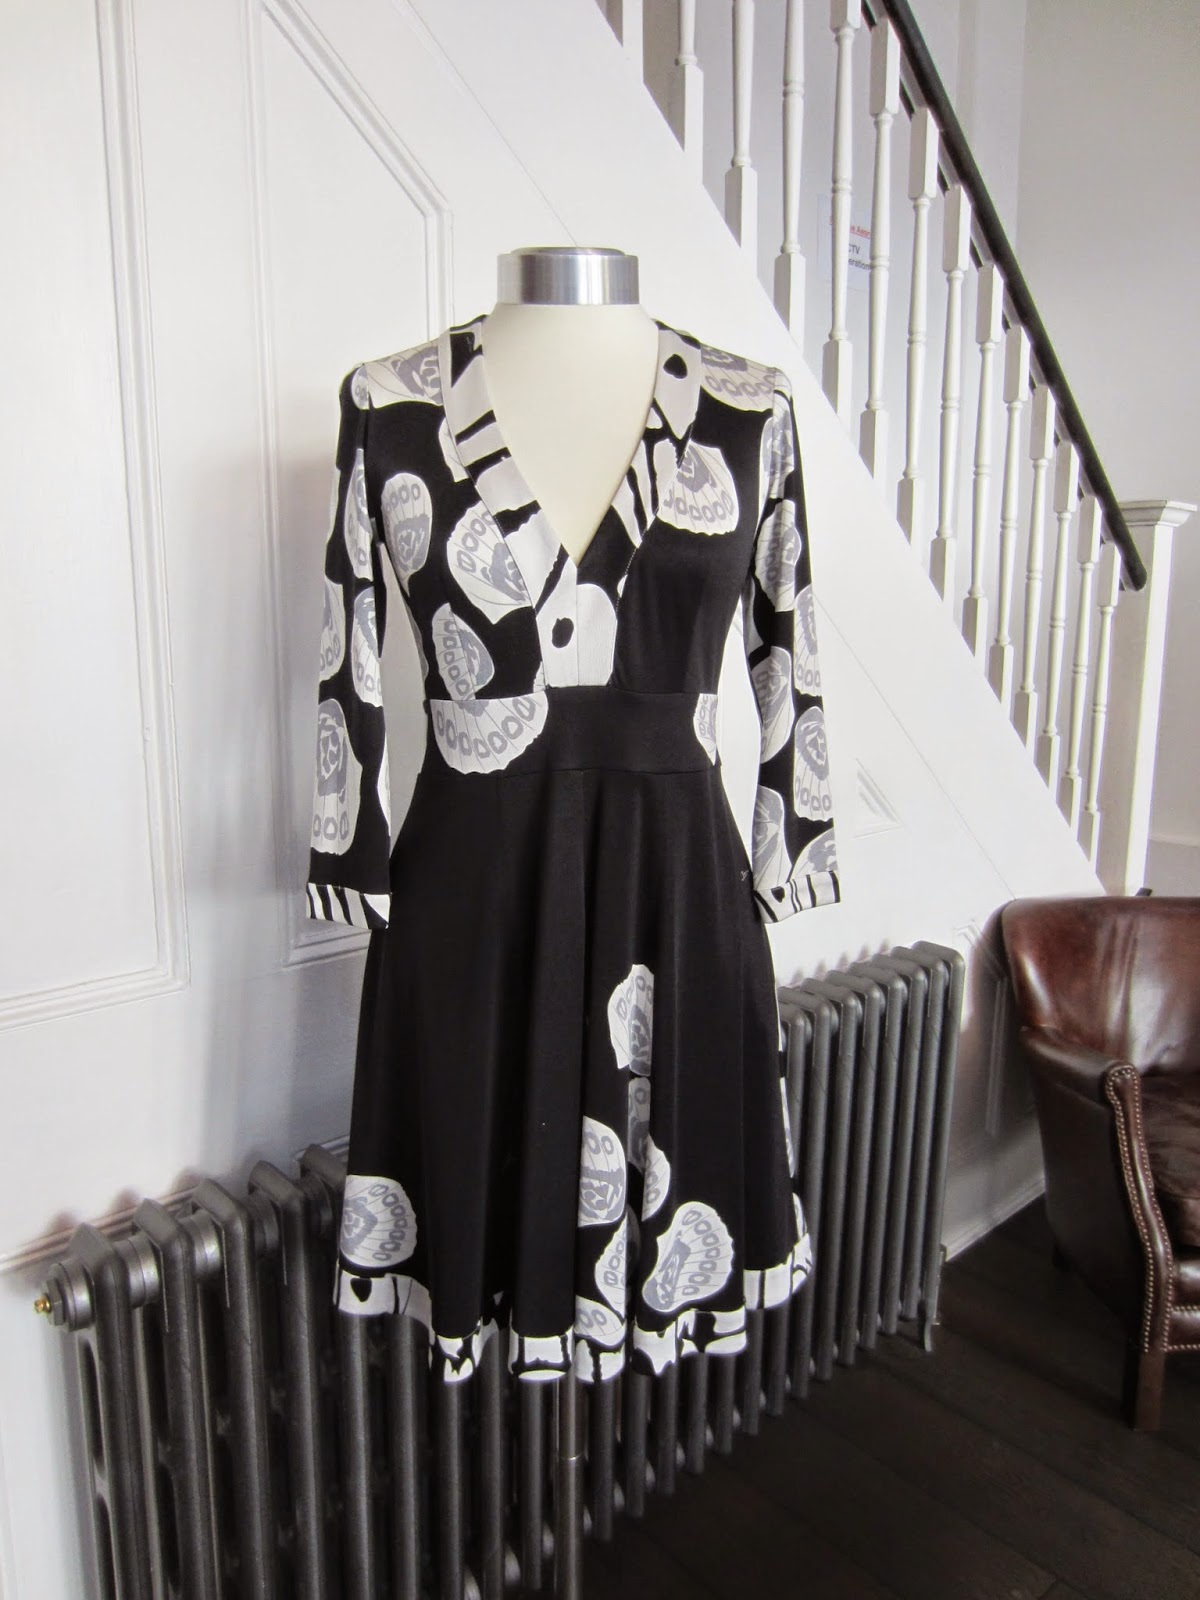 Issa Black & White Silk Floral Print Dress